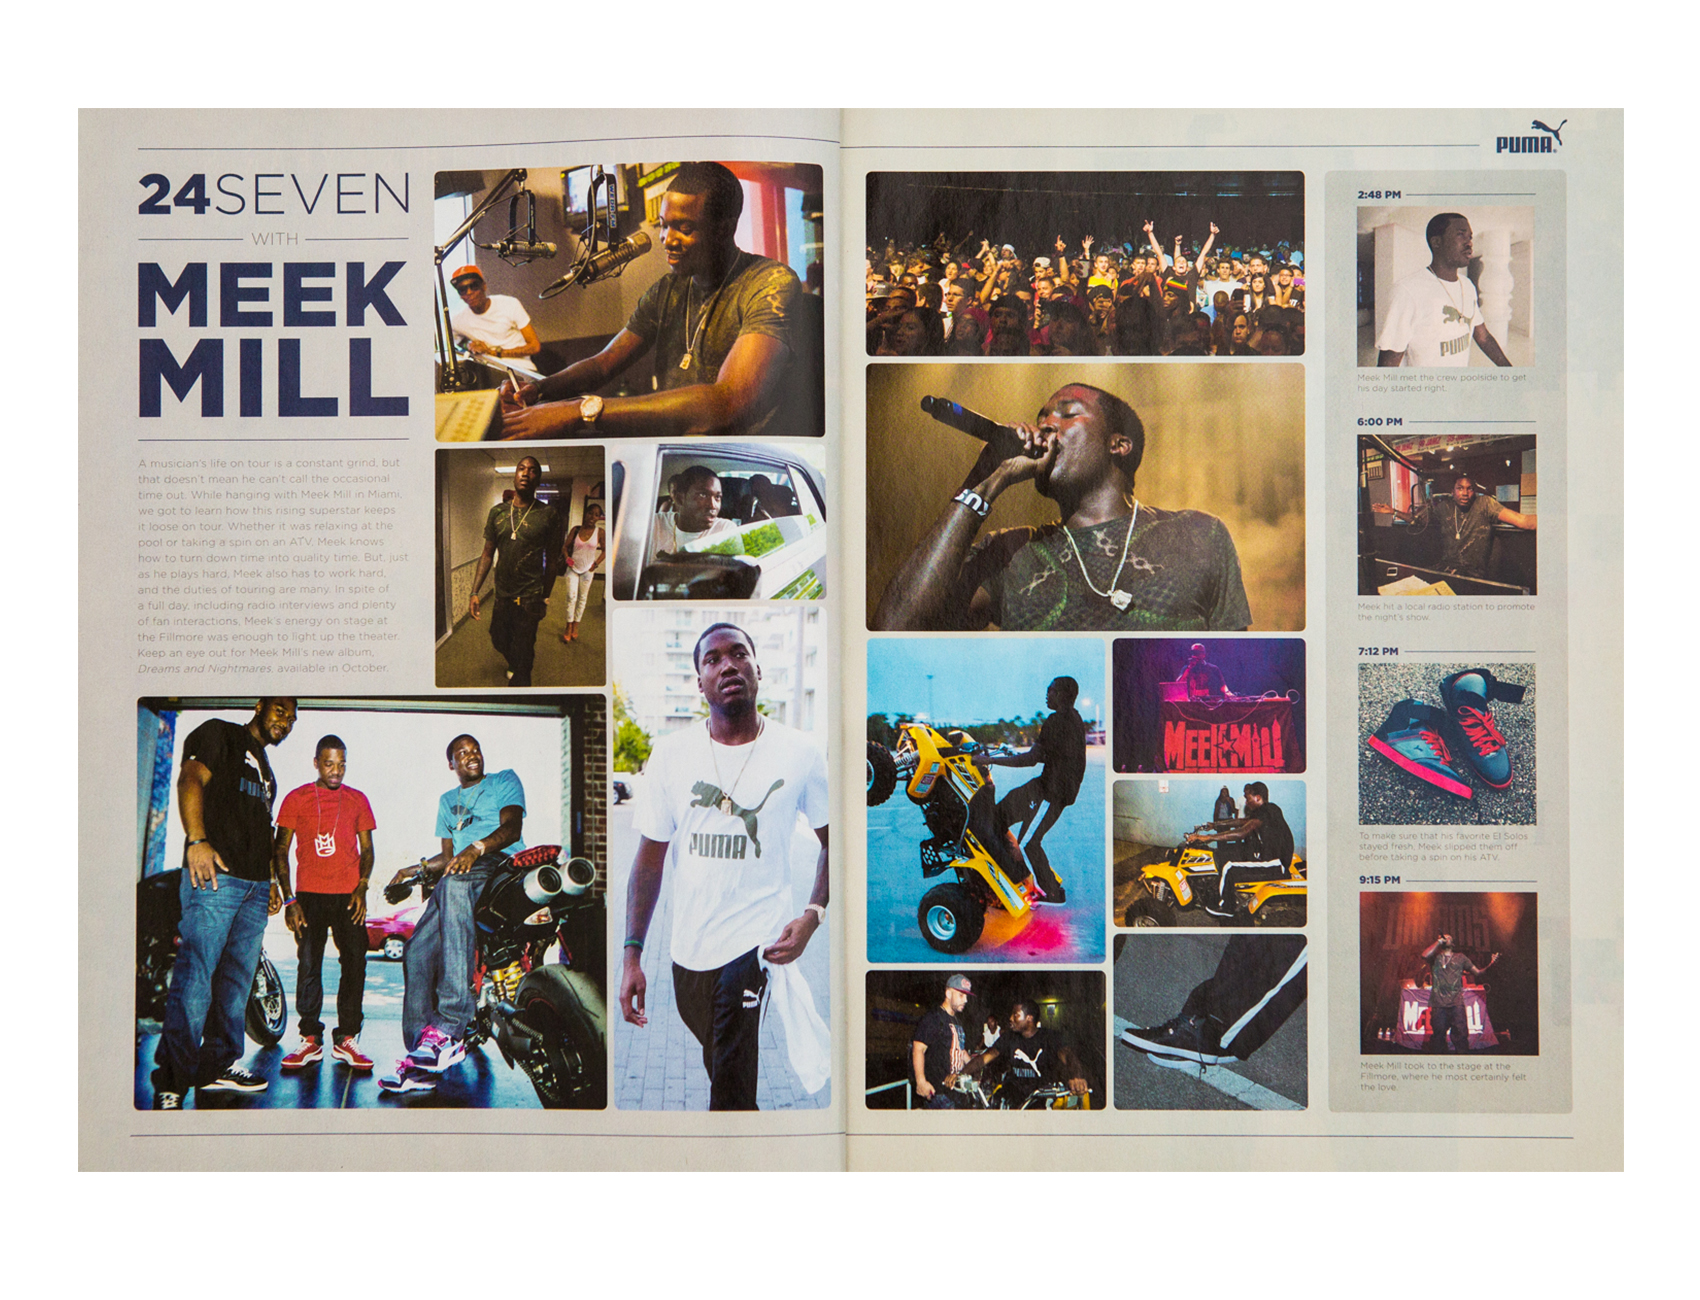 Meek Mill - Complex - Oct / Nov 2012